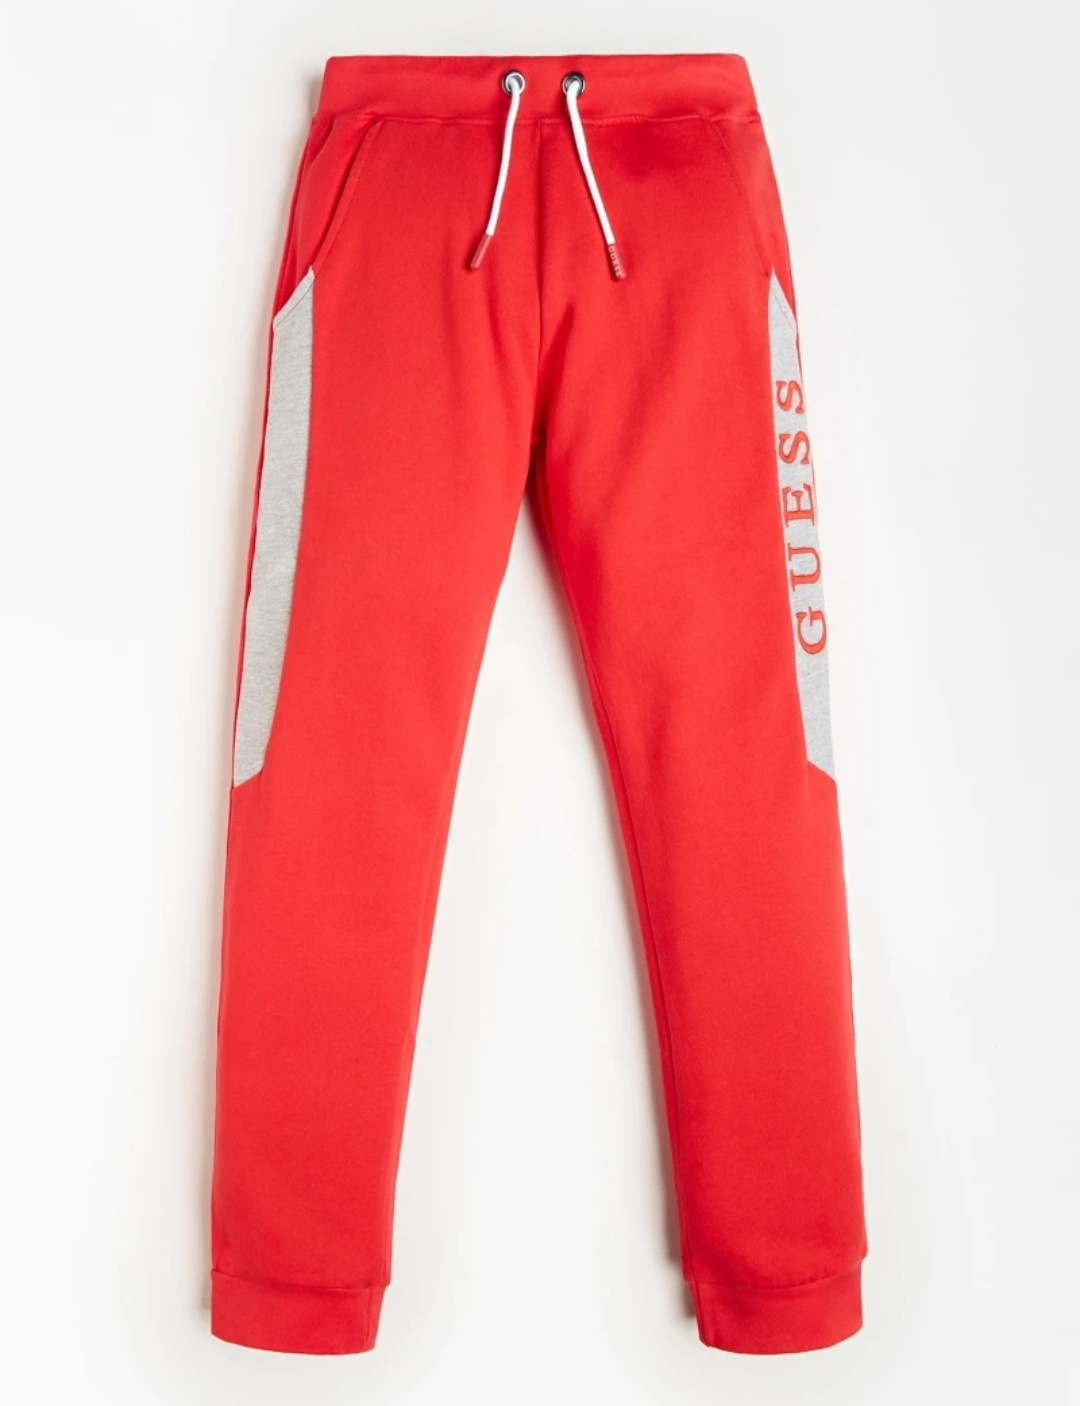 Guess Guess Red Joggy Bottoms